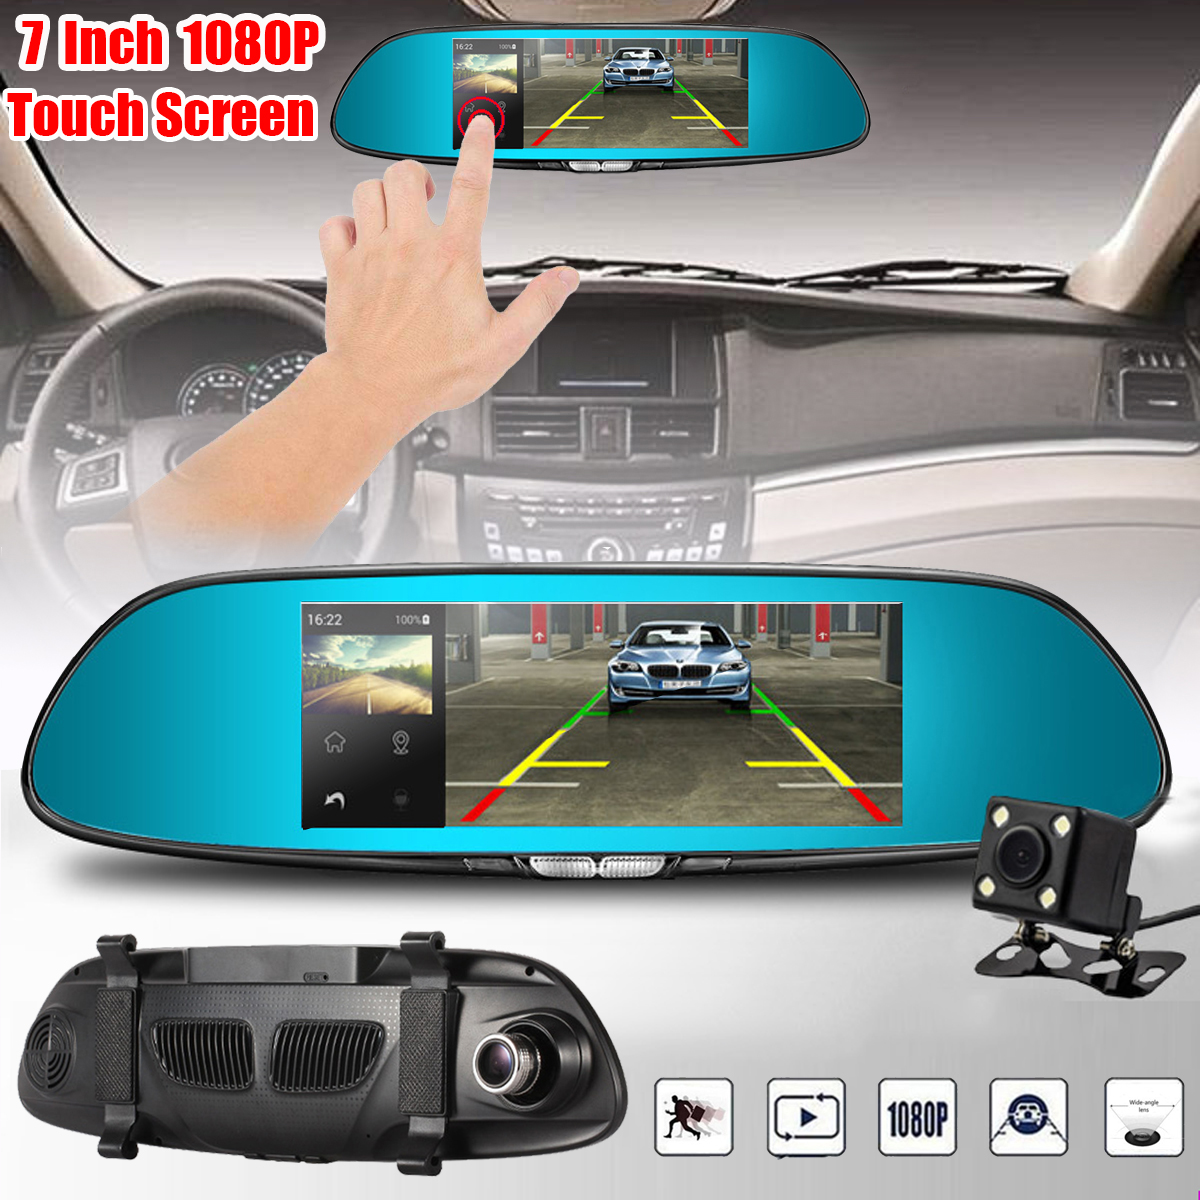 цены FHD 1080P 7 Inch Dual Lens Rear View Mirror Dash Reversing Camera DVR Car 170 Degree Touchable Car Camera Recorder Dash Cam